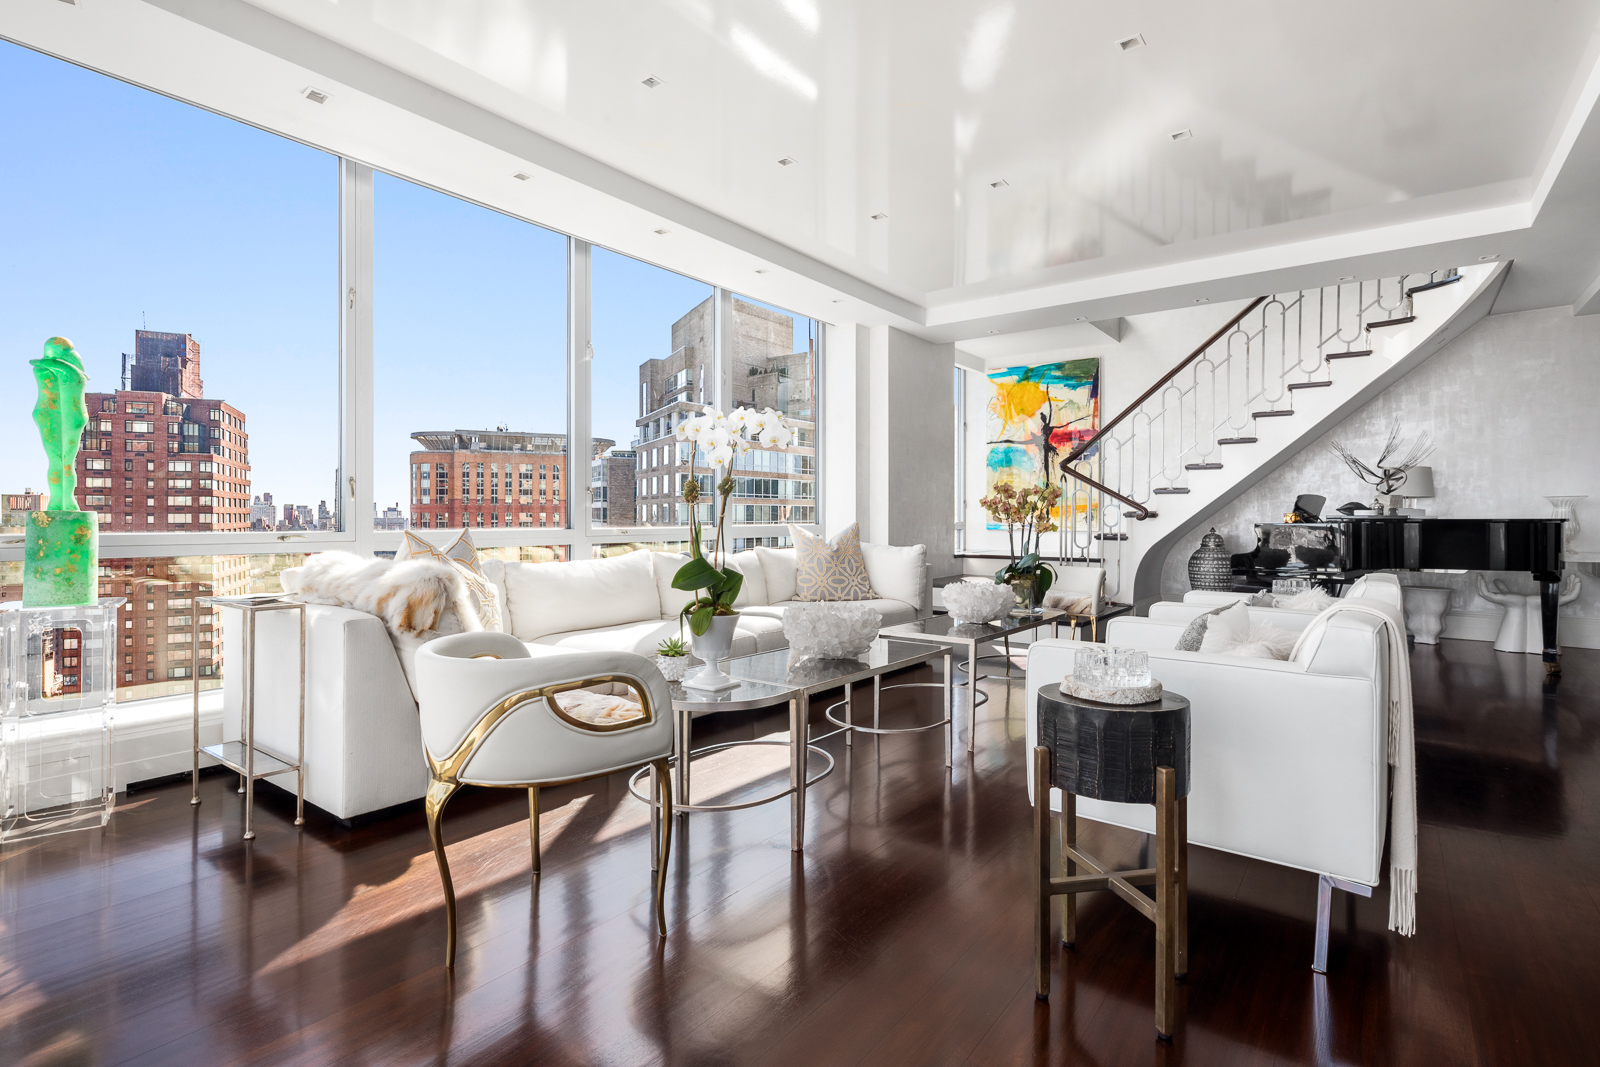 Spectacular, high floor Condominium Apartment with extraordinary, open City and Central Park views. At approximately 4,800 square feet and in mint condition, this beautiful home was renovated to the highest standard and is flooded with light from North, East and South exposures.Enter the Gallery to the Living Room, with Central Park views, and the Formal Dining Room with a double-sided fireplace. The exquisite Wood-Paneled Library or 5th?Bedroom has a full bath en-suite. ?A Peloton and a treadmill are both cleverly hidden here as well.The enormous Eat-in Chef's Kitchen with top-of-the-line appliances provides another warm and wonderful gathering place. ?Off the kitchen is the Laundry Room, with an oversized vented washer/dryer.The dramatic staircase in the Living Room leads to the 2nd?floor and into the glamorous Primary Bedroom Suite, with floor-to-ceiling windows, side Central Park views and a gas fireplace. ?The Primary Bathroom is done entirely in White Onyx with a double vanity, soaking tub and large walk-in shower – a true sanctuary. ?The suite is completed by spacious windowed Dressing Room.The upstairs hallway is lined with closets and leads to 3 additional Bedrooms and 3 additional Bathrooms.No detail was overlooked in designing this magnificent home. ?The apartment features Central AC, a Creston Smart Home System, and seamless and exceptional craftsmanship throughout with marble and mosaic tile.Located in the heart of Lincoln Square, the Grand Millennium provides its residents with a 24-hour doorman, a concierge, and a live-in resident manager. ?Central Park, Columbus Circle, Lincoln Center, Time Warner Center, Equinox Sports Club, upscale shopping and dining are all easily accessible. The building needs 48 hours' notice before appointments. This is a Co-Eclusive with Douglas Elliman.